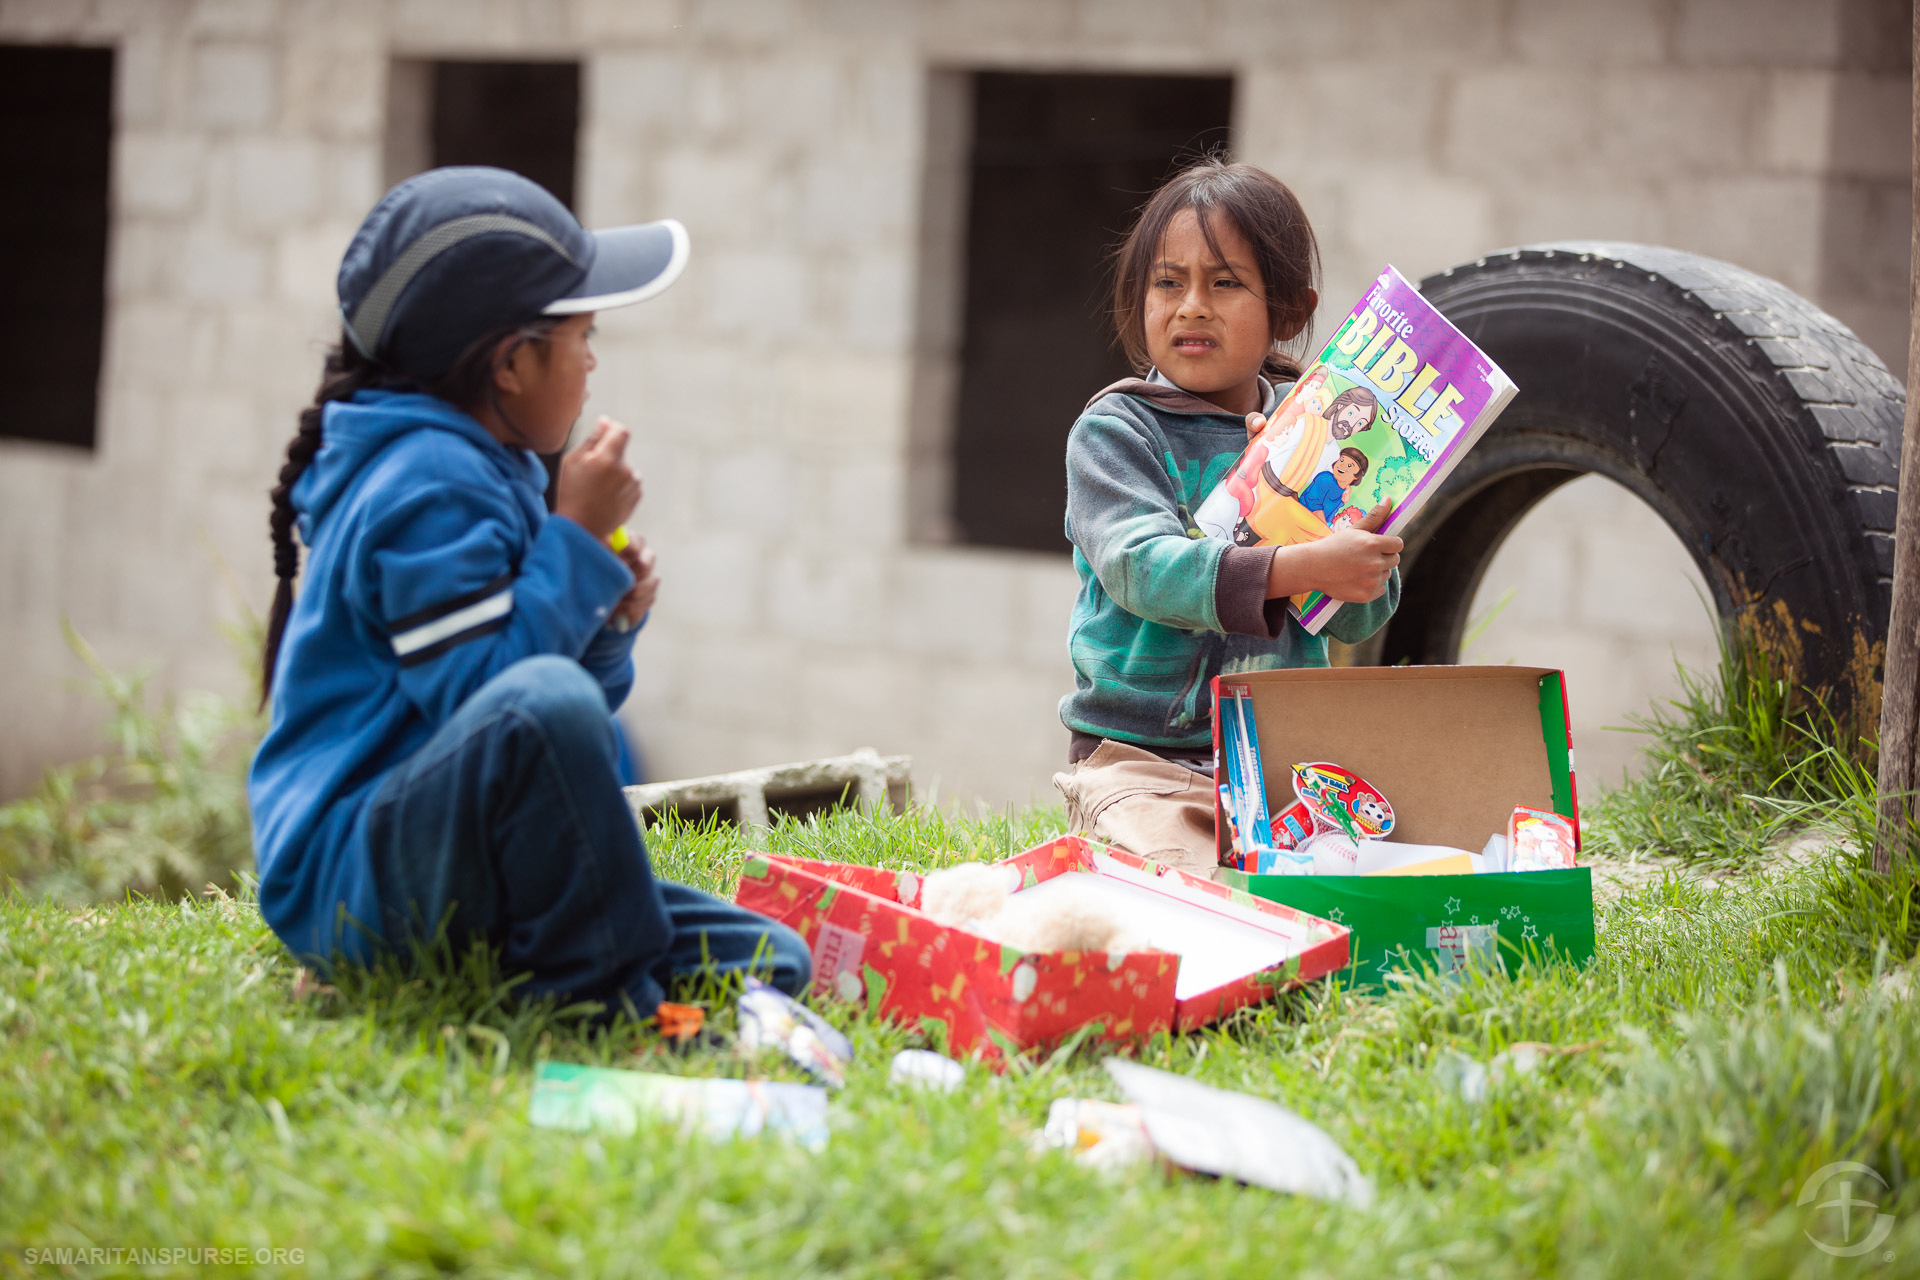 Children discover what's inside their boxes. Gifts like coloring books, hygiene items, and small toys make a huge impact on children who may have never received a gift before.